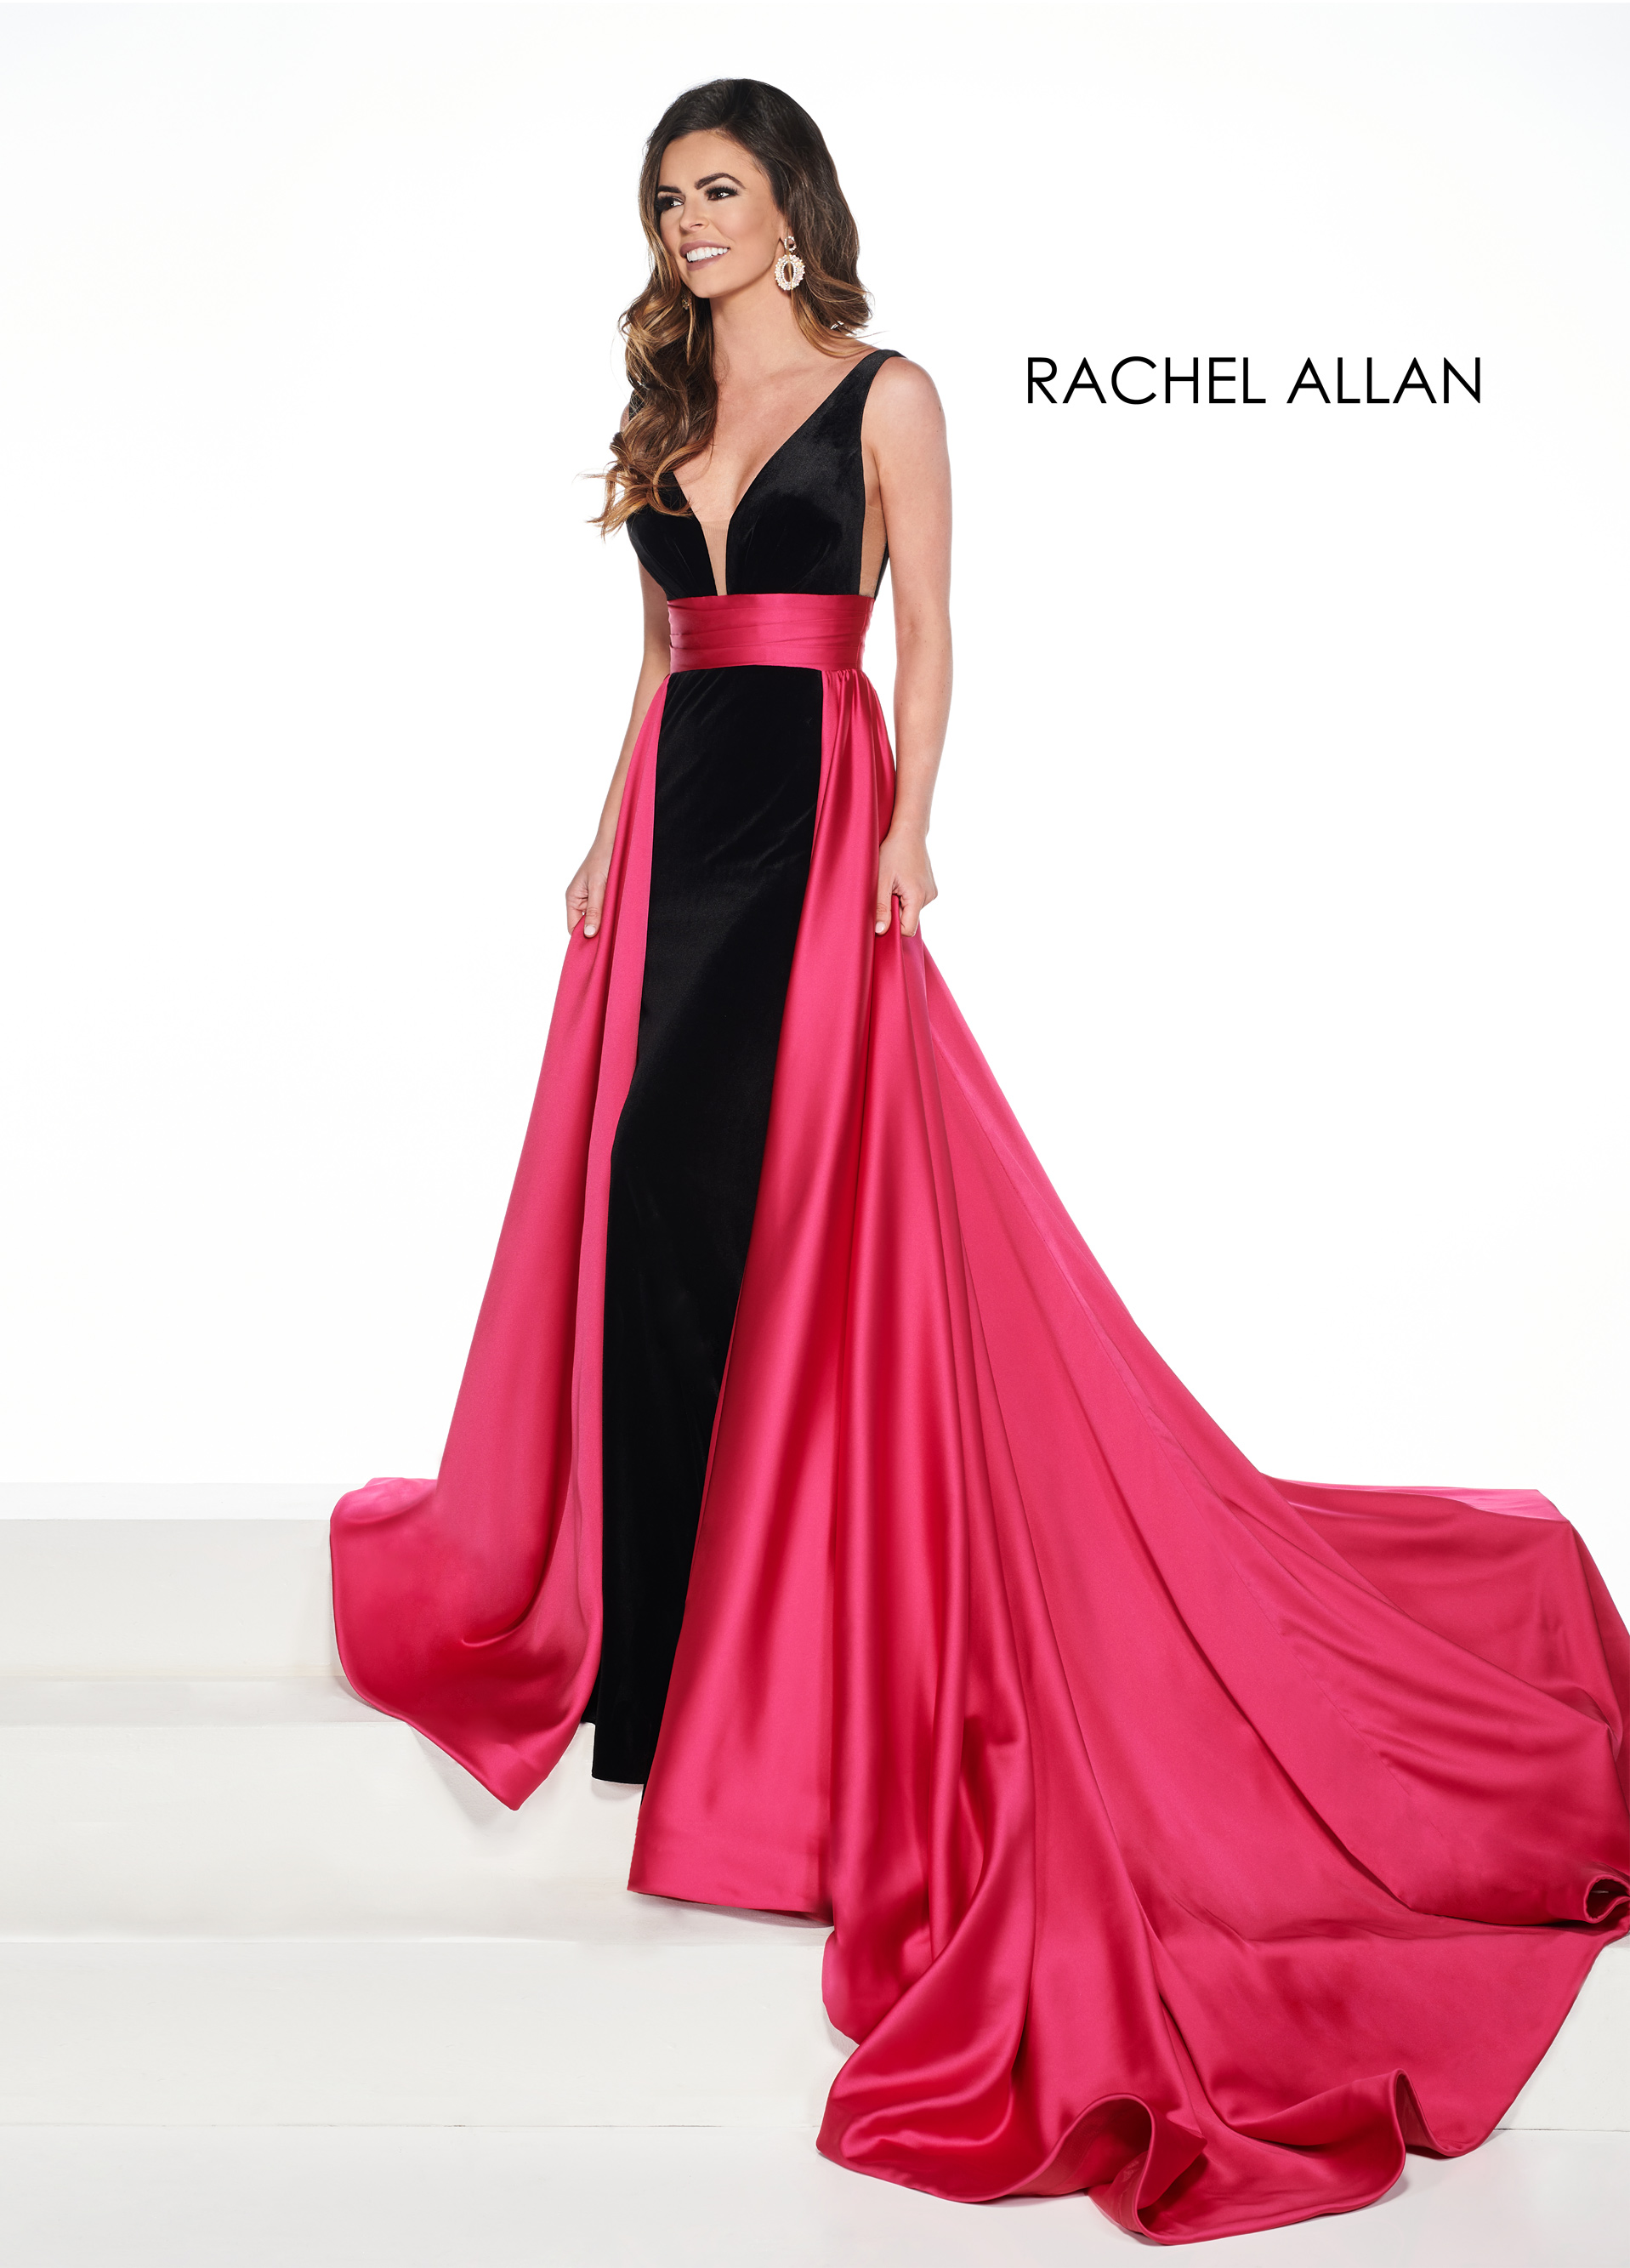 V-Neck Skirt With Overlay Pageant Dresses in Fuchsia Color